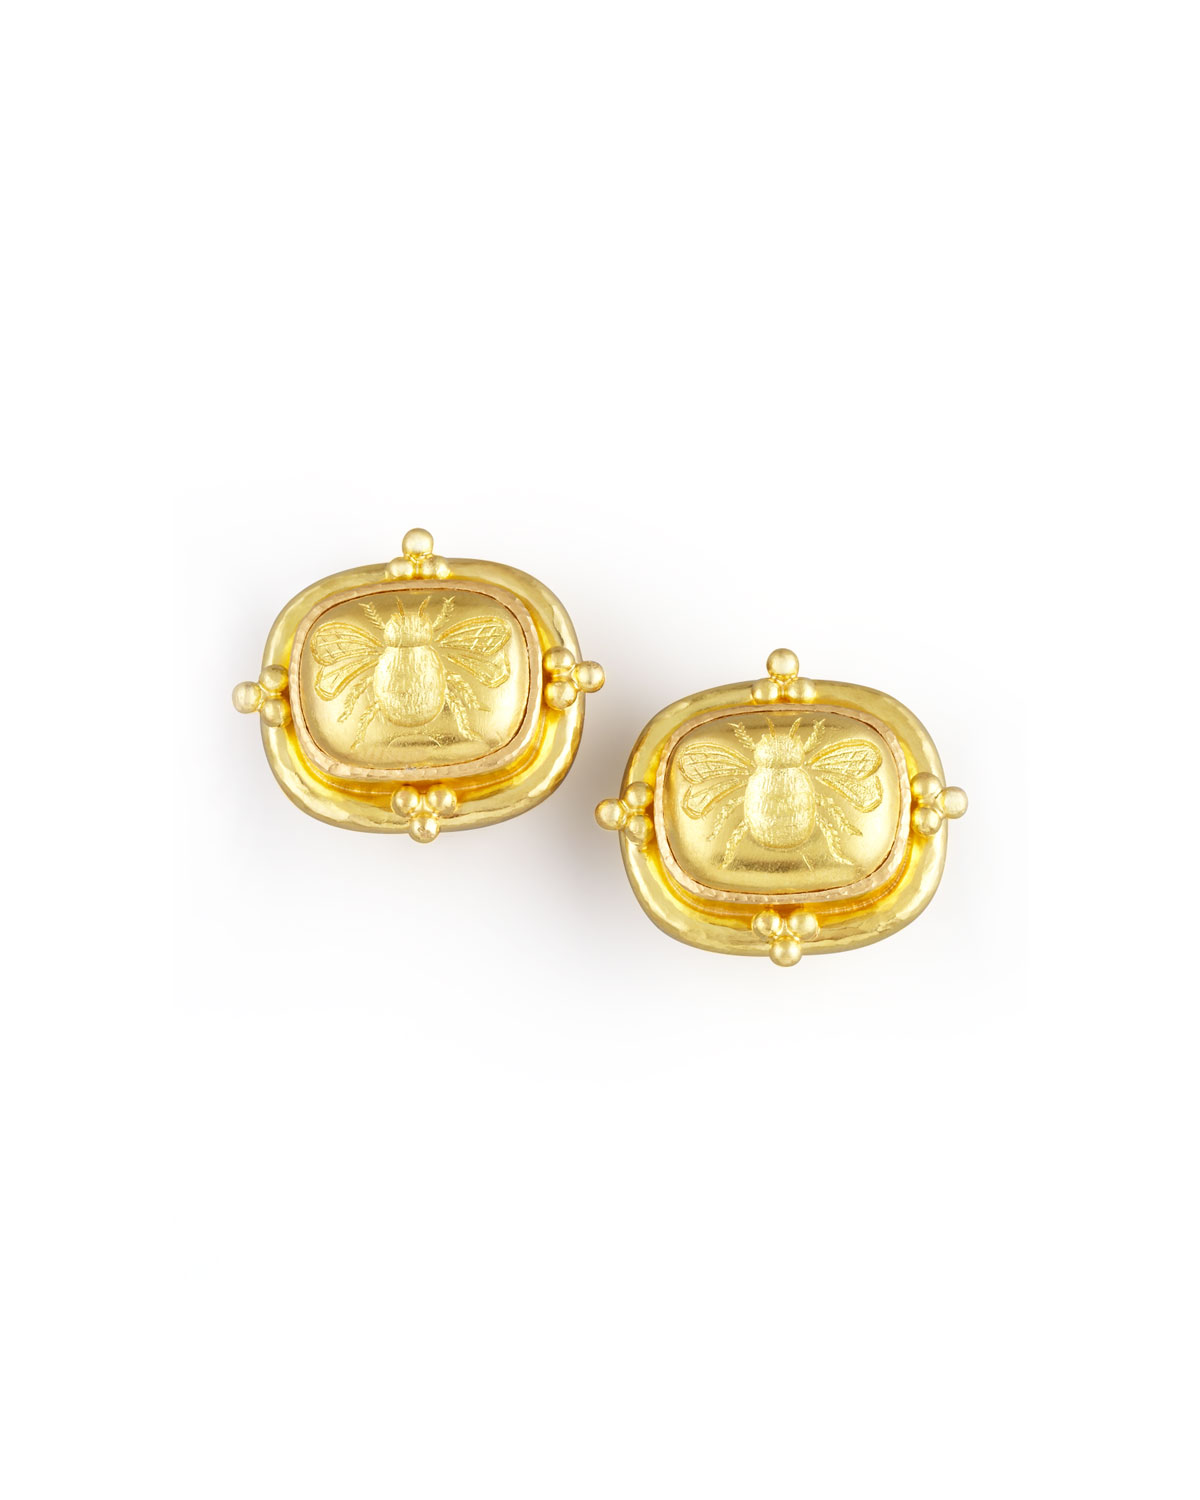 19k Gold Bee Clip Post Earrings